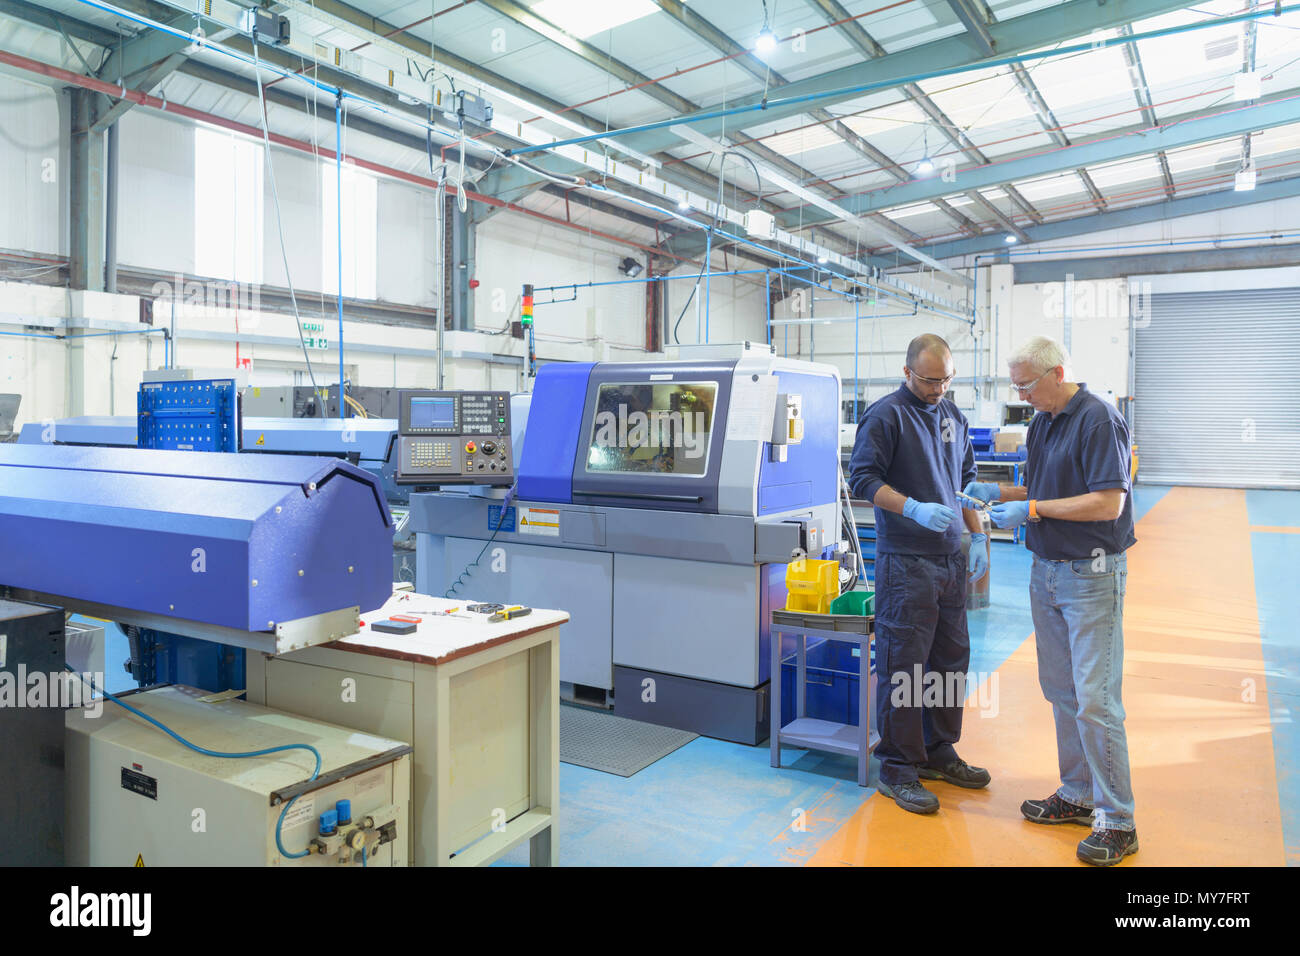 Engineers discussing project work with auto lathe machine in engineering factory - Stock Image